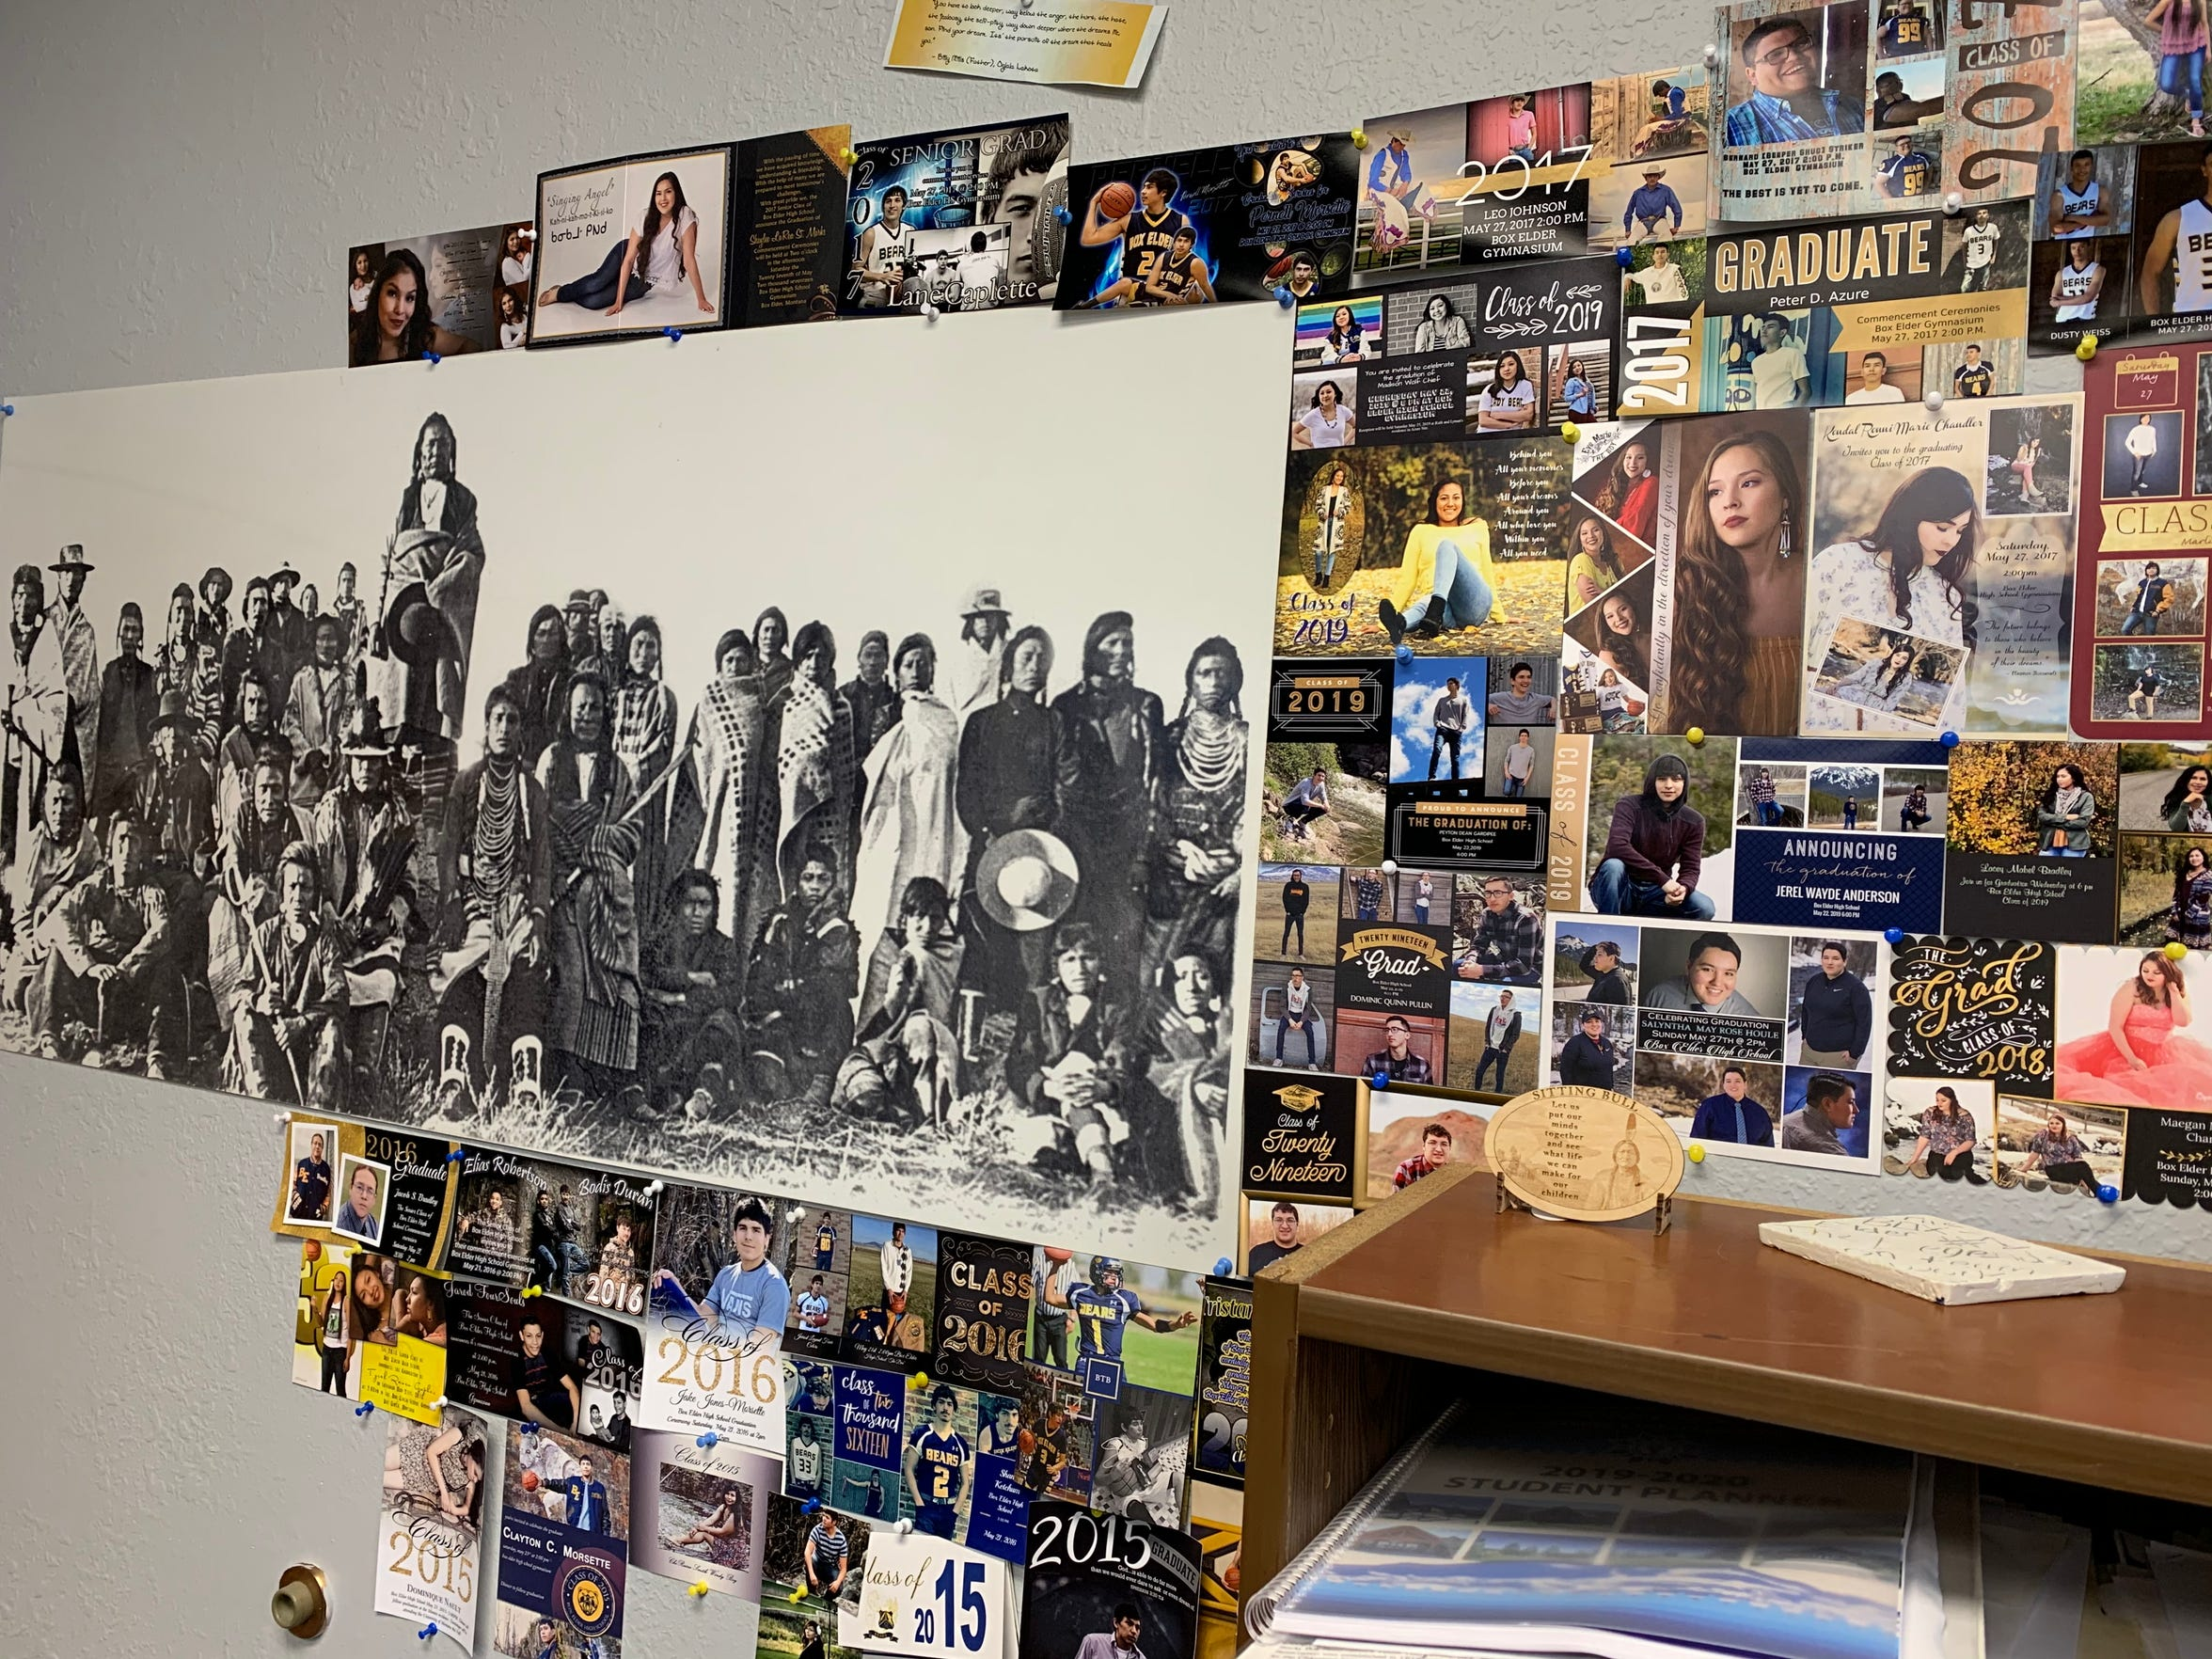 In his office, Superintendent Jeremy MacDonald displays a historical picture of Cree tribal members next to Box Elder students' graduation announcements. The collage reminds MacDonald of the past and how Box Elder students work to shape a better future.